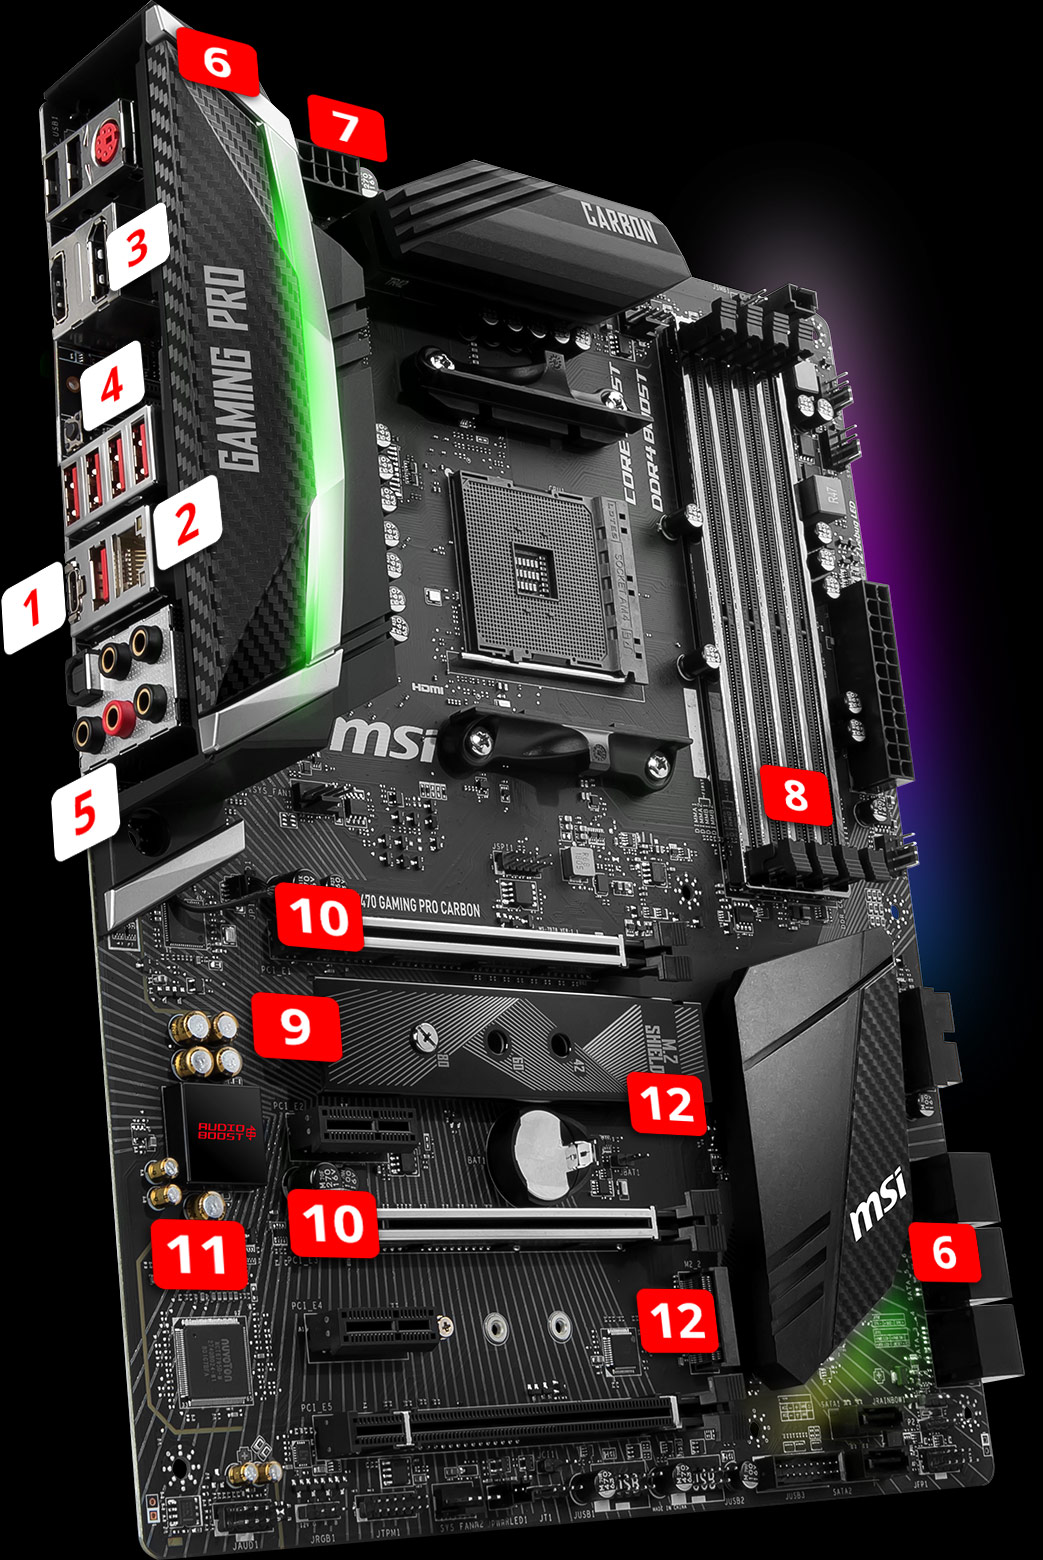 X470 GAMING PRO CARBON | Motherboard - The world leader in